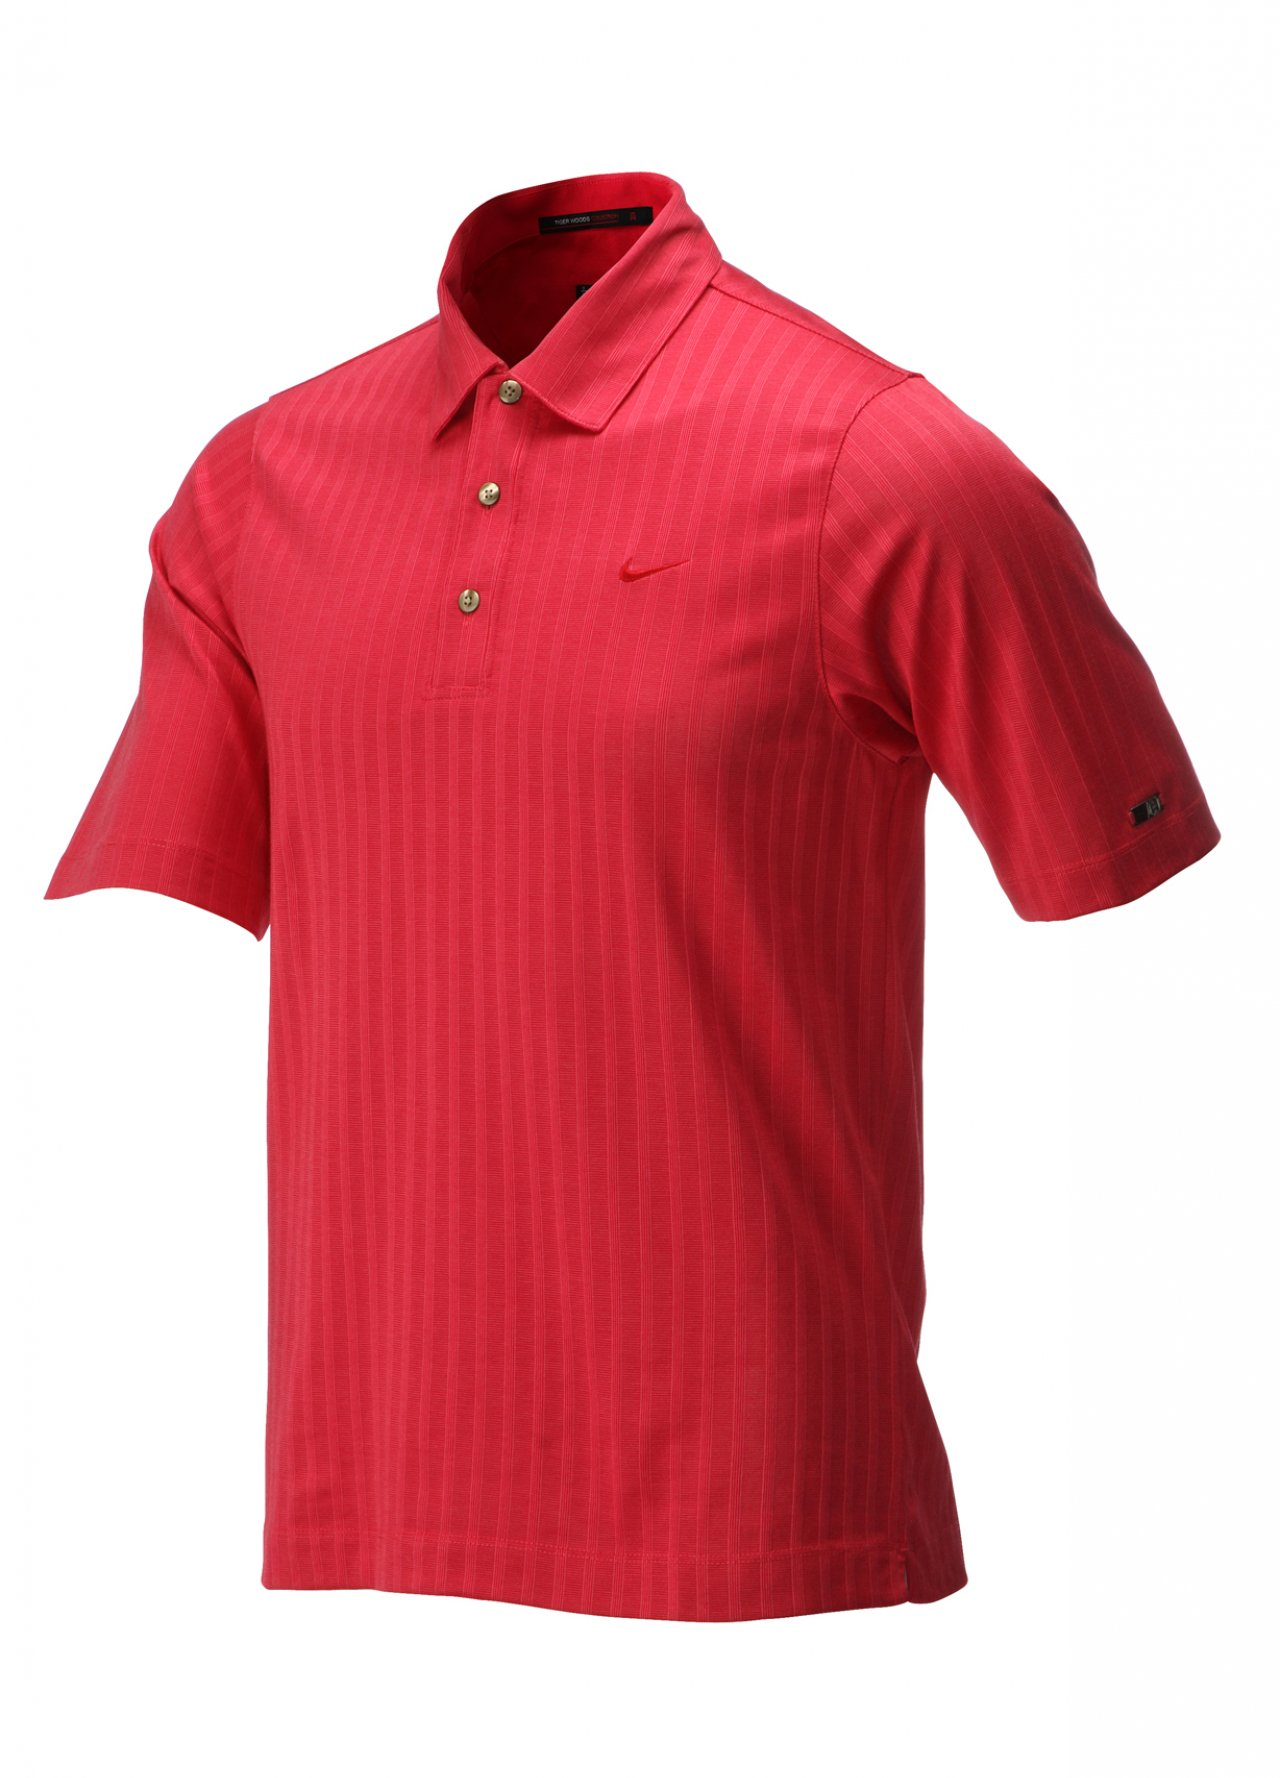 Golf shirts county golf golf sale golf clothing for Nike cotton golf shirts